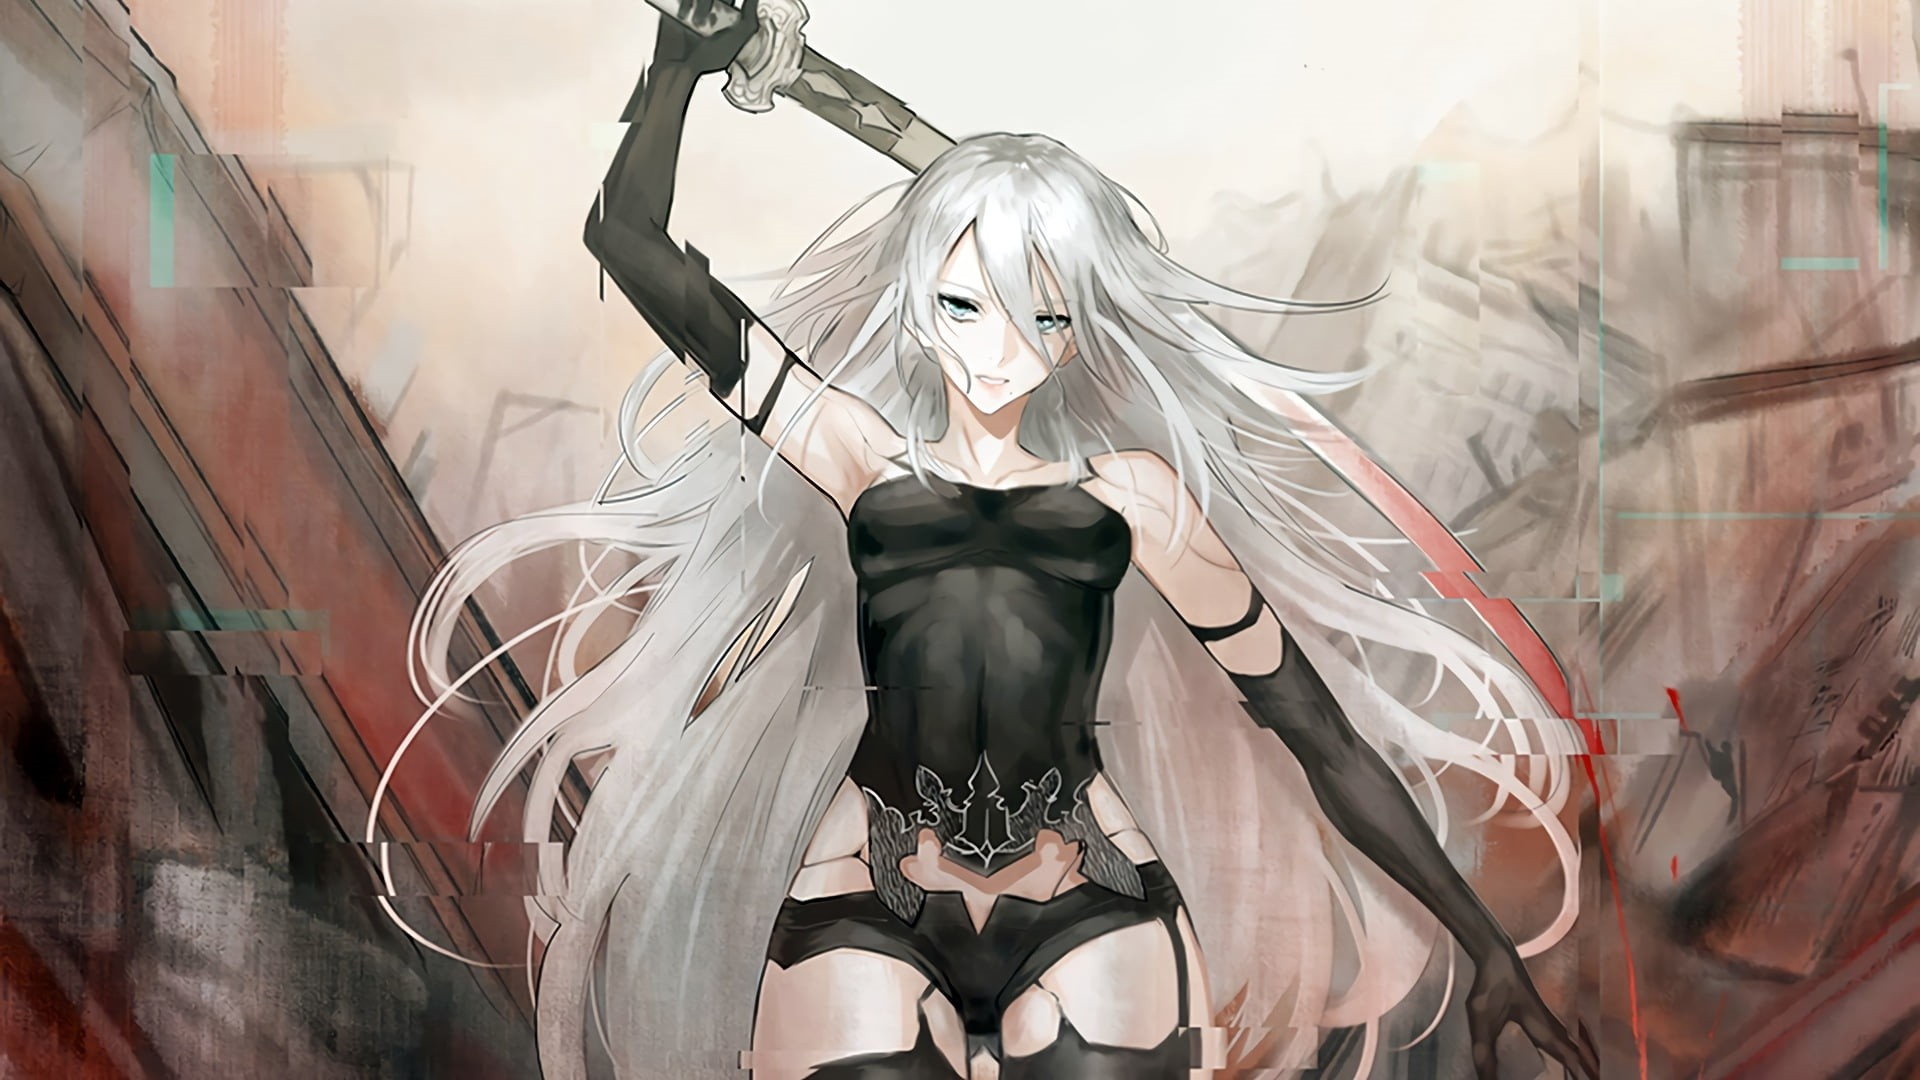 White Hair Anime Girl Pic